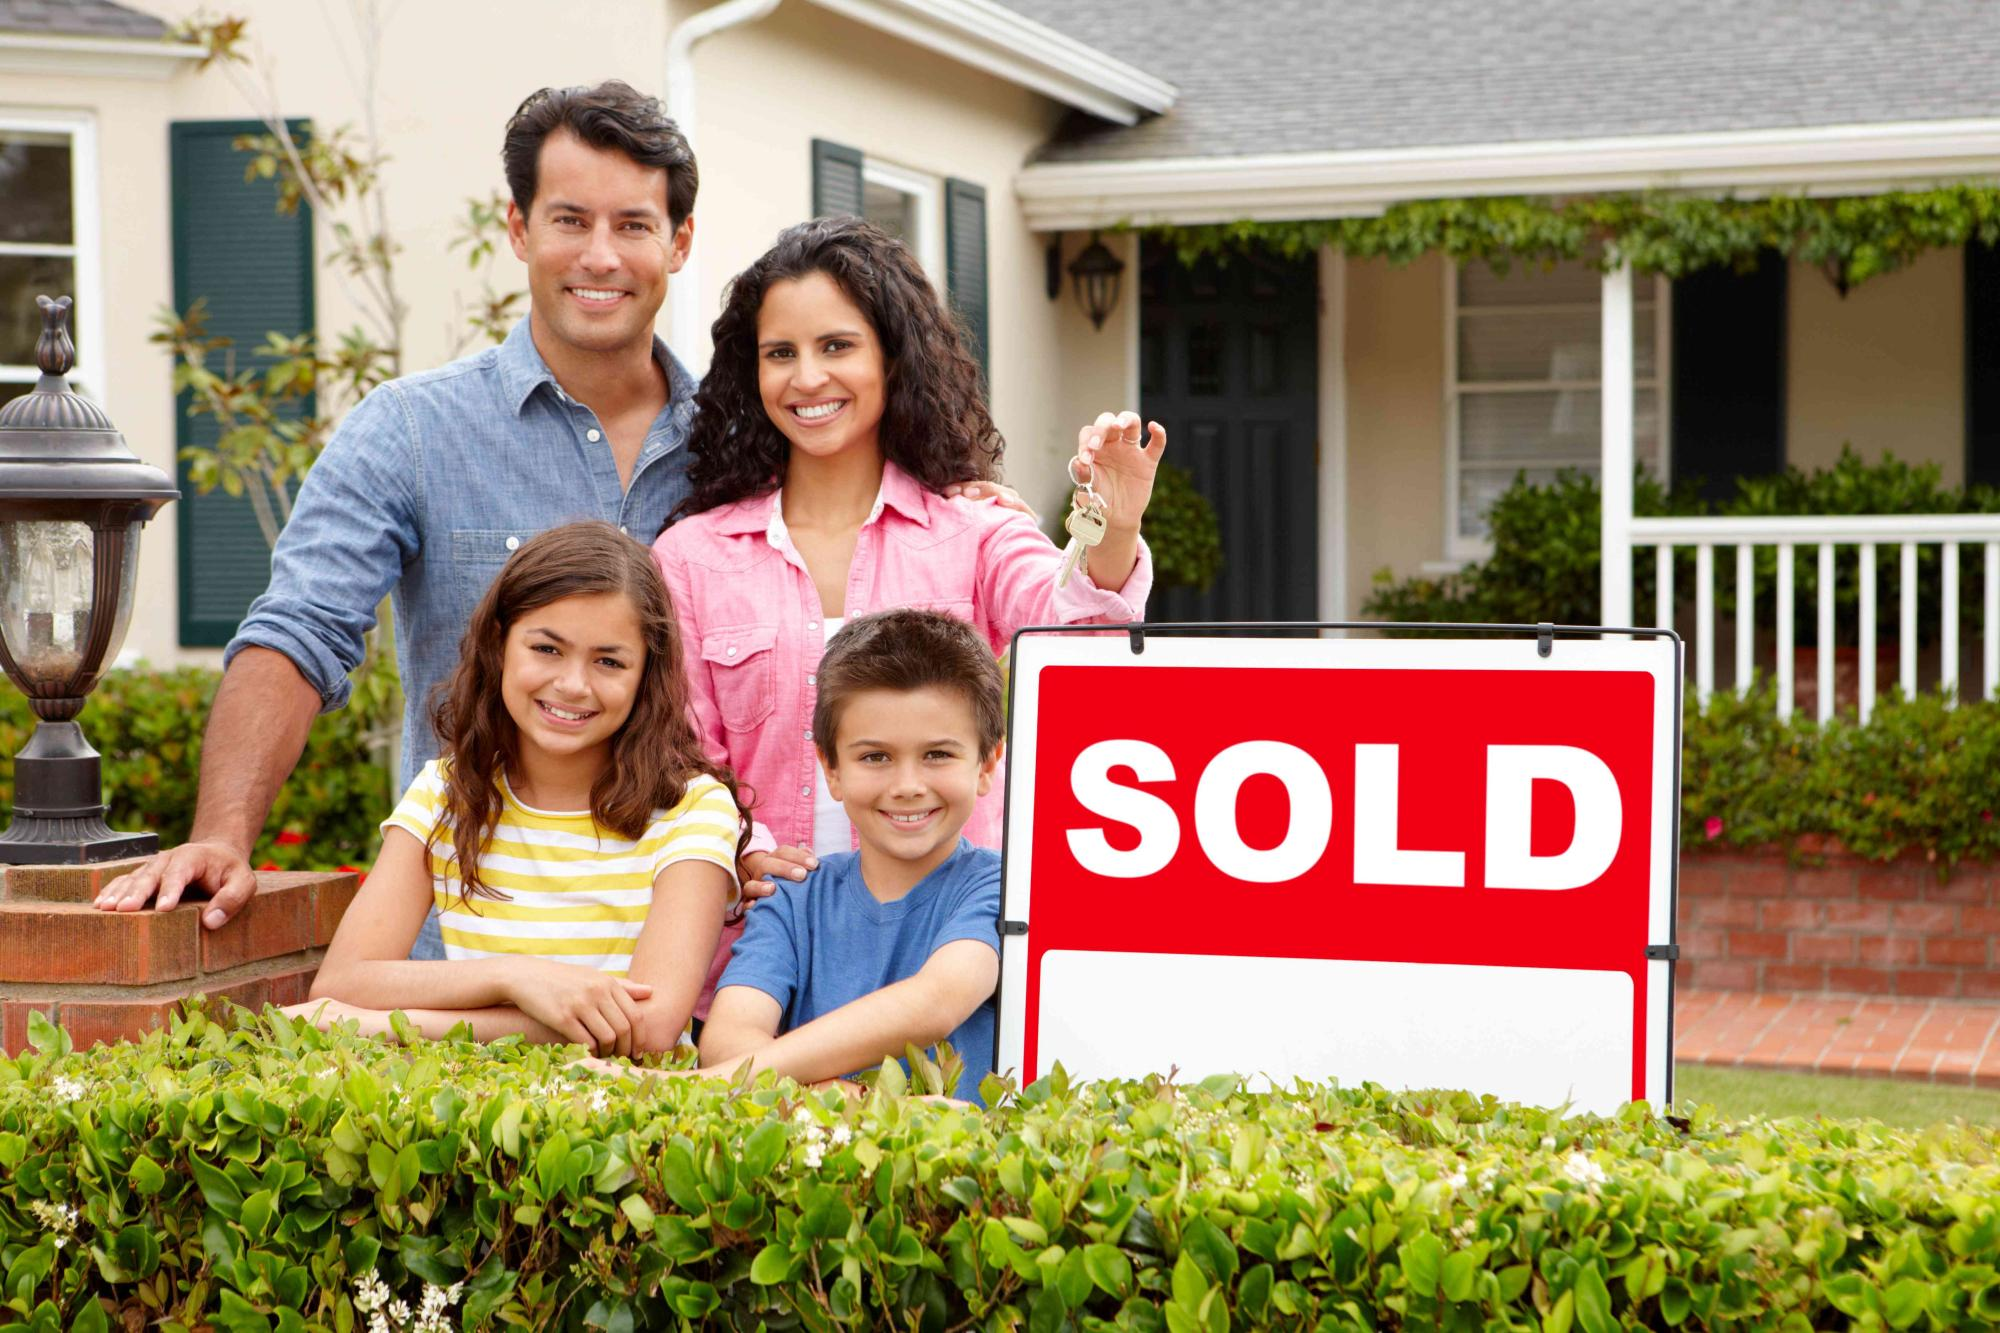 Selling Your Home Quickly To Cash Property Buyers